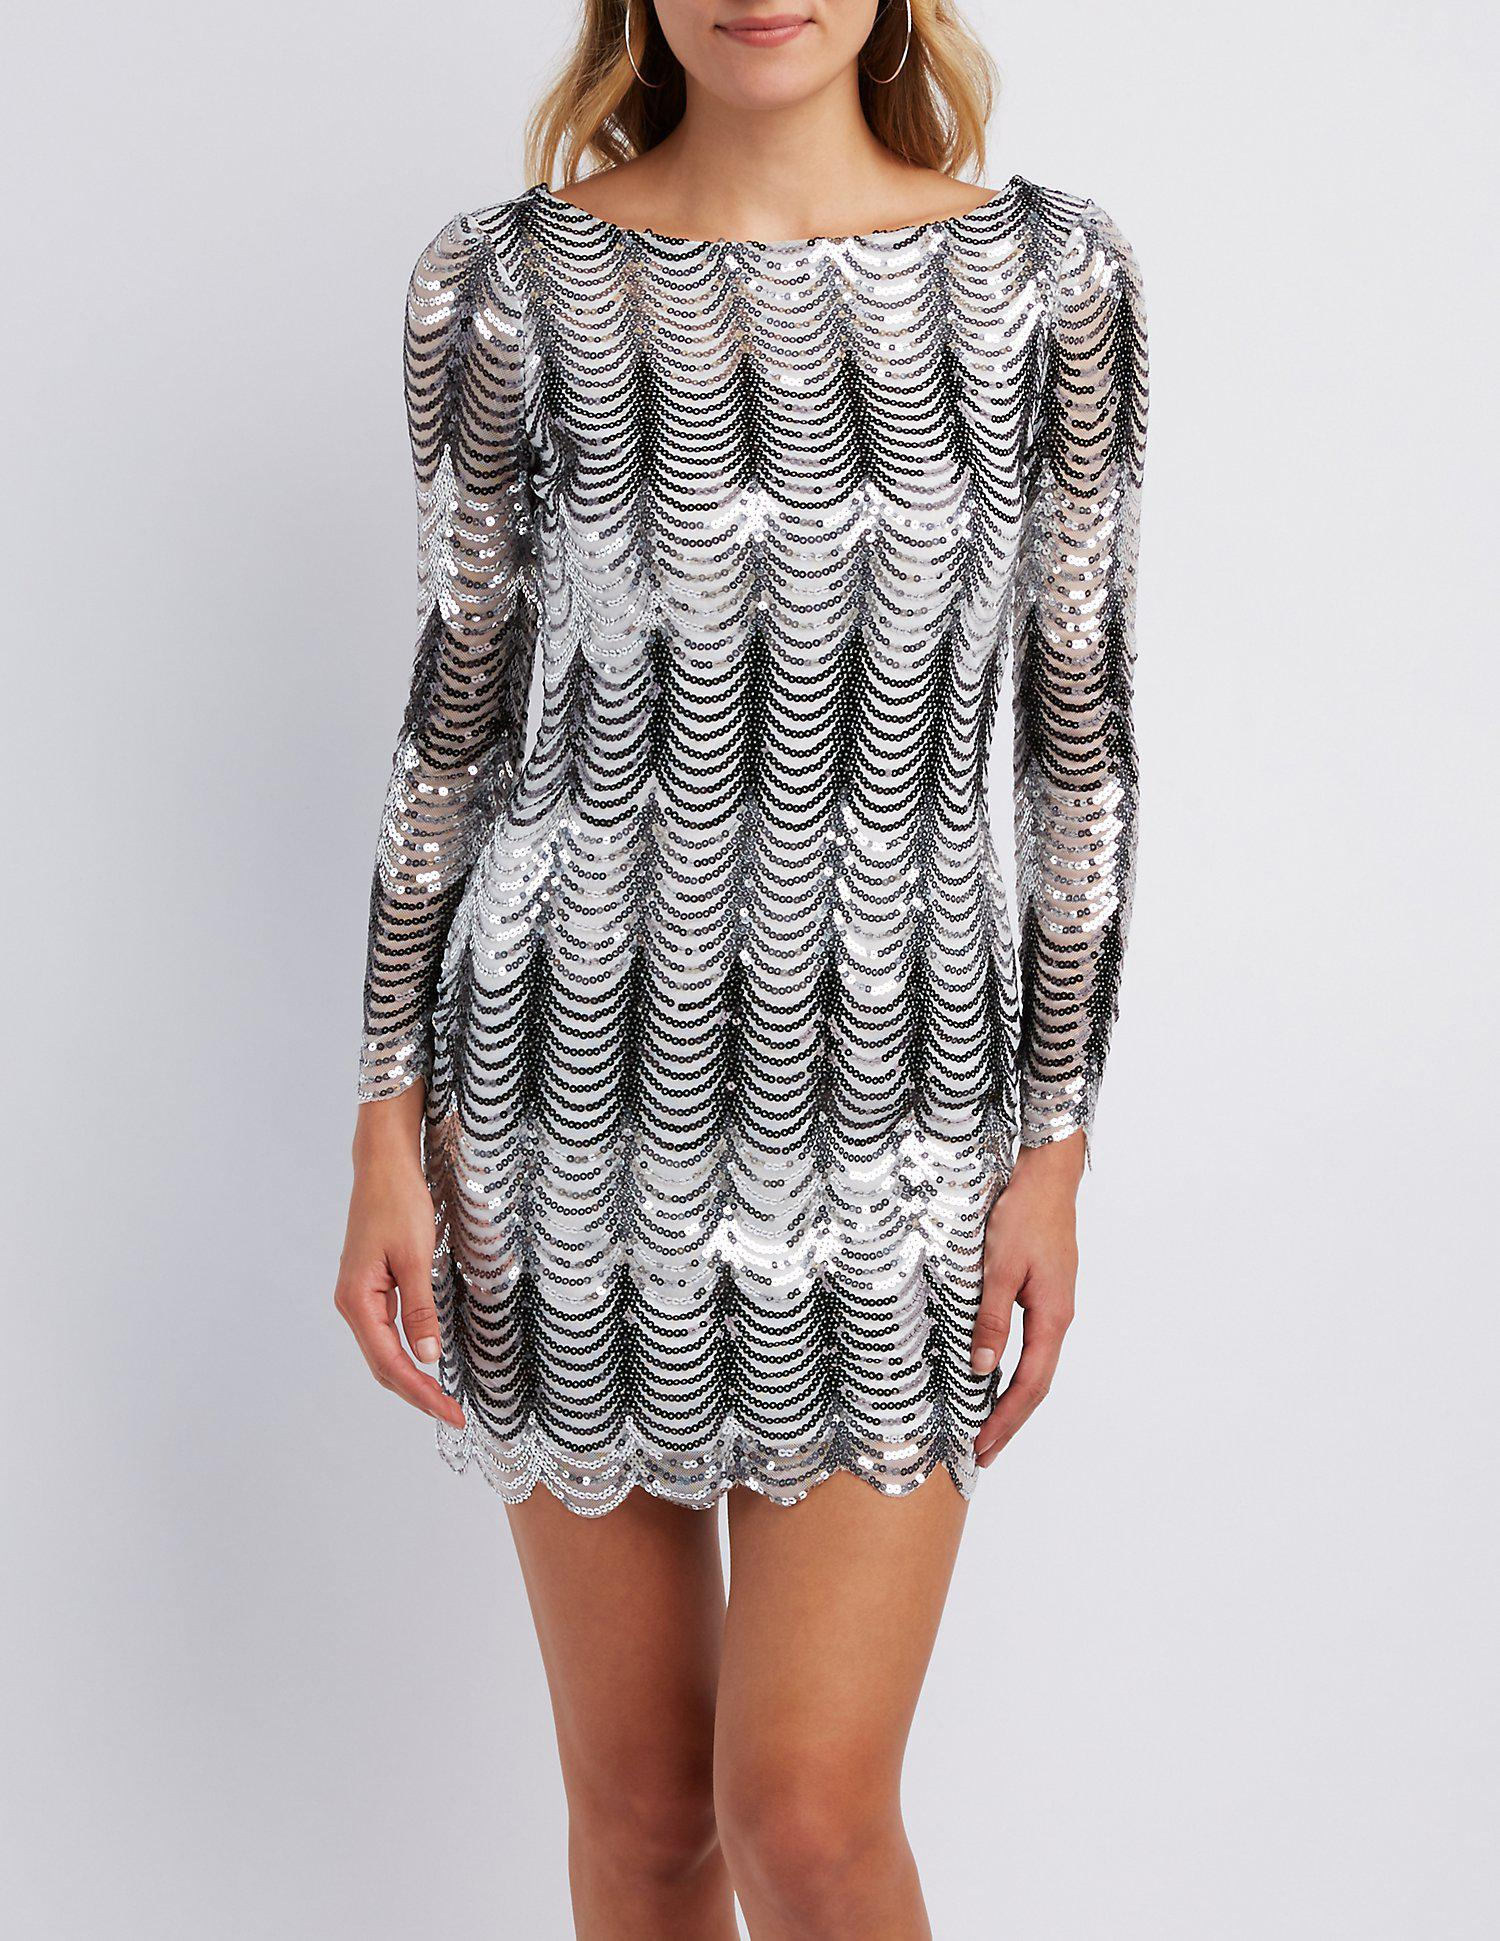 cd4d2157bc Lyst - Charlotte Russe Scalloped Sequins Bodycon Dress